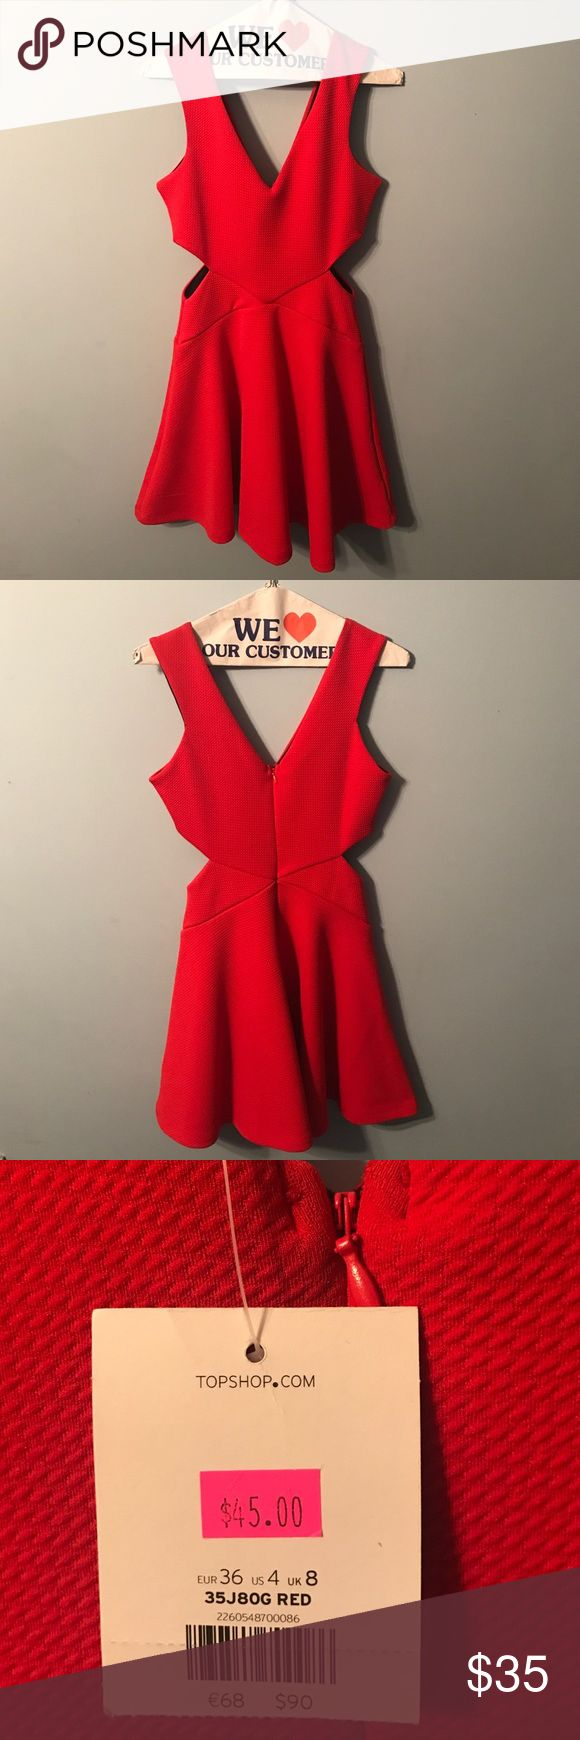 TOPSHOP red dress perfect for Valentine's day! A beautiful red flattering dress with two cut outs on either side of the dress. Originally $90 but bought on sale for $45. Never worn new with tags! Size US 4. Topshop Dresses